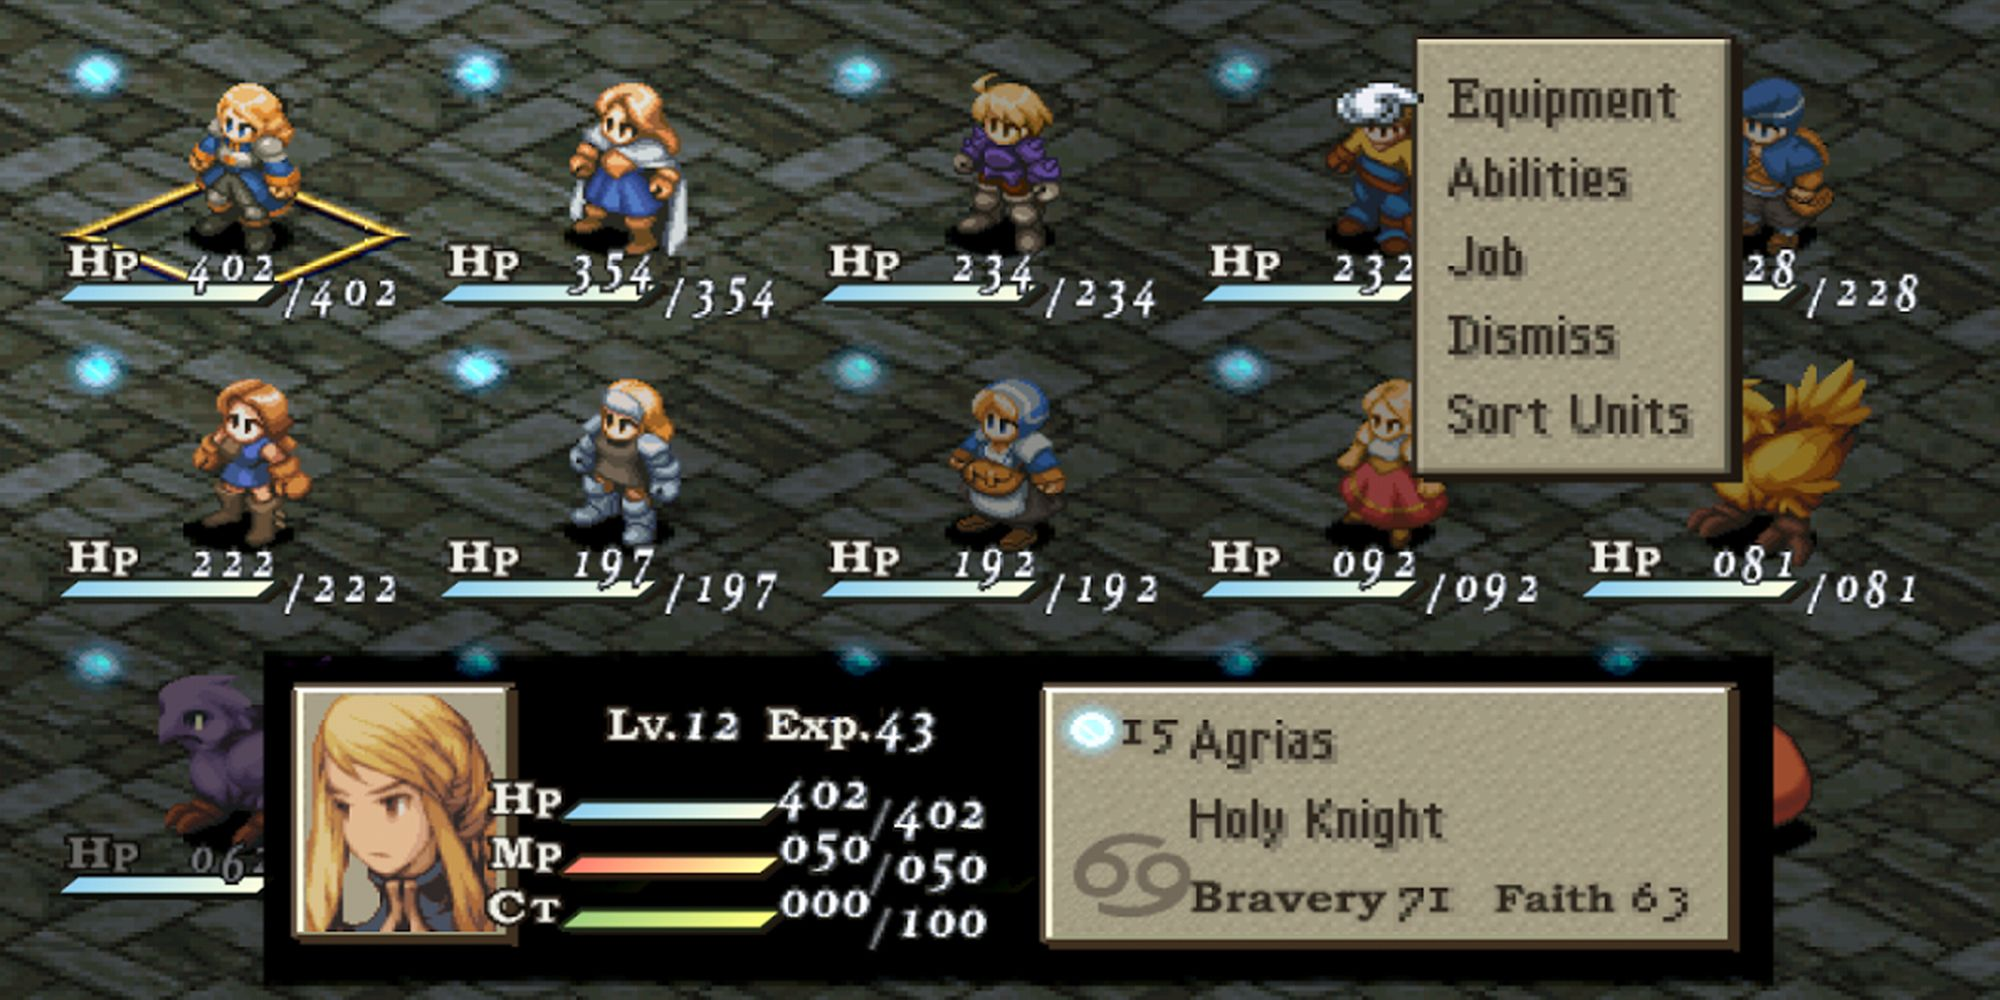 "<p><strong data-redactor-tag=""strong""><em data-redactor-tag=""em"" data-verified=""redactor"">from $10 (PSP, <a href=""https://store.playstation.com/#!/en-us/games/final-fantasy-tactics-the-war-of-the-lions/cid=UP0082-ULUS10297_00-FFTWOLUMDL000000"" data-tracking-id=""recirc-text-link"">PS Vita</a>) </em></strong><strong data-redactor-tag=""strong""><em data-redactor-tag=""em"" data-verified=""redactor""><a href=""https://www.amazon.com/Final-Fantasy-Tactics-War-Lions-Sony/dp/B000SSPH3E?tag=bp_links-20"" target=""_blank"" class=""slide-buy--button"" data-tracking-id=""recirc-text-link"">BUY NOW</a></em></strong><span class=""redactor-invisible-space"" data-verified=""redactor"" data-redactor-tag=""span"" data-redactor-class=""redactor-invisible-space""></span><span class=""redactor-invisible-space"" data-verified=""redactor"" data-redactor-tag=""span"" data-redactor-class=""redactor-invisible-space""></span></p><p><span class=""redactor-invisible-space"" data-verified=""redactor"" data-redactor-tag=""span"" data-redactor-class=""redactor-invisible-space"">Between its story, the music, and its unique style of gameplay, <em data-redactor-tag=""em"" data-verified=""redactor"">Final Fantasy Tactics</em> is a game that's always a joy to pick up and play. <span class=""redactor-invisible-space"" data-verified=""redactor"" data-redactor-tag=""span"" data-redactor-class=""redactor-invisible-space"">It's so easy to get lost in the plot and learn new tricks, and it's a blast to go to<span class=""redactor-invisible-space"" data-verified=""redactor"" data-redactor-tag=""span"" data-redactor-class=""redactor-invisible-space""> battle. This game is a must for those into strategy games.<span class=""redactor-invisible-space"" data-verified=""redactor"" data-redactor-tag=""span"" data-redactor-class=""redactor-invisible-space""></span></span></span><br></span></p><p><span class=""redactor-invisible-space"" data-verified=""redactor"" data-redactor-tag=""span"" data-redactor-class=""redactor-invisible-space""><span class=""redactor-invisible-space"" data-verified=""redactor"" data-redactor-tag=""span"" data-redactor-class=""redactor-invisible-space""><span class=""redactor-invisible-space"" data-verified=""redactor"" data-redactor-tag=""span"" data-redactor-class=""redactor-invisible-space""><span class=""redactor-invisible-space"" data-verified=""redactor"" data-redactor-tag=""span"" data-redactor-class=""redactor-invisible-space""><strong data-verified=""redactor"" data-redactor-tag=""strong"">Related: </strong><span class=""redactor-invisible-space"" data-verified=""redactor"" data-redactor-tag=""span"" data-redactor-class=""redactor-invisible-space""><a href=""http://www.bestproducts.com/tech/software/g1626/new-video-game-releases/"" data-tracking-id=""recirc-text-link"">Newer Video Games That You Should Add to Your Collection</a></span><br></span></span></span></span></p>"